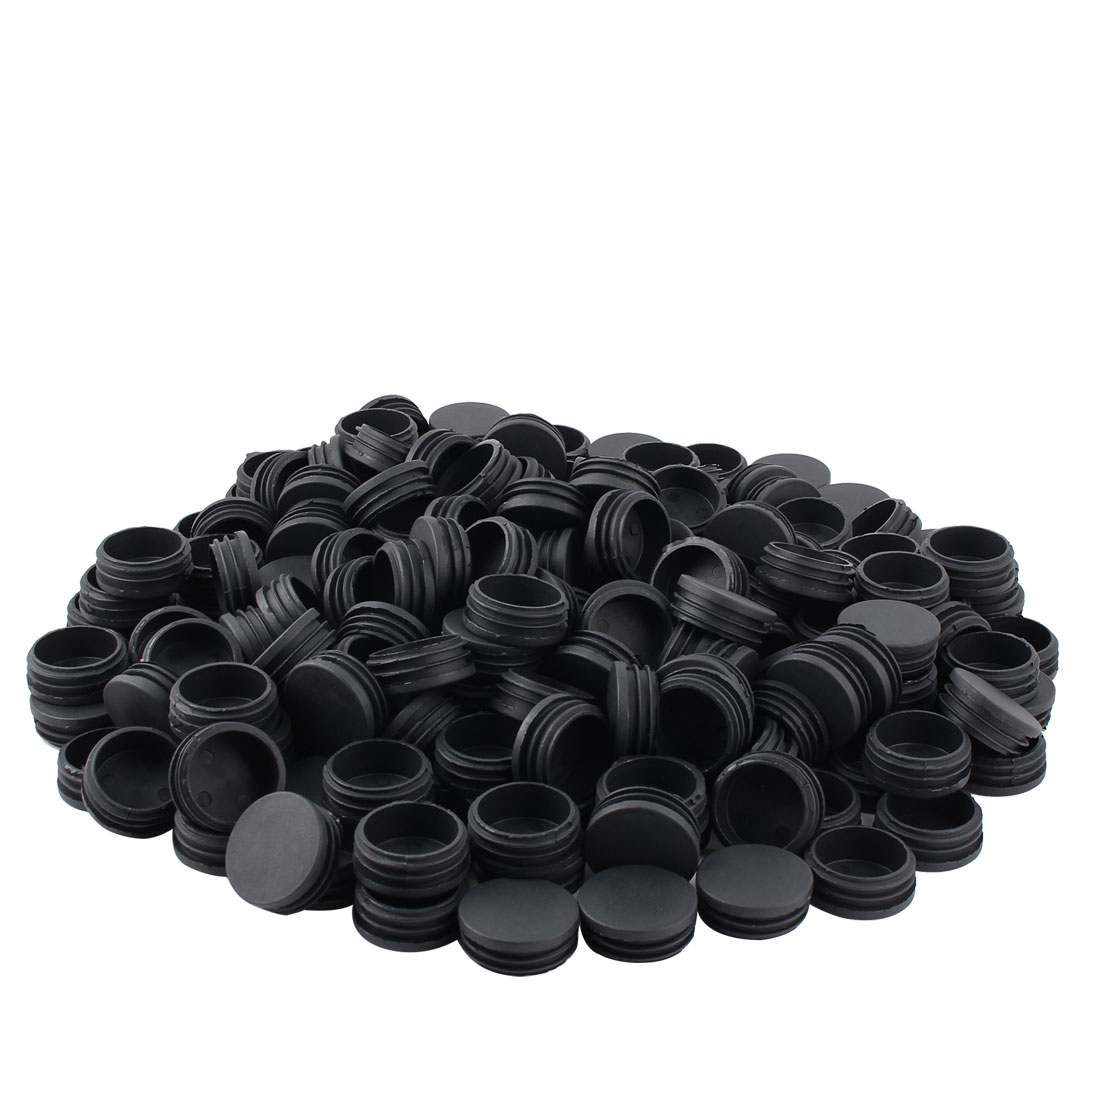 Furniture Table Legs Plastic Round Tube Pipe Insert Cover Black 45mm Dia 200pcs